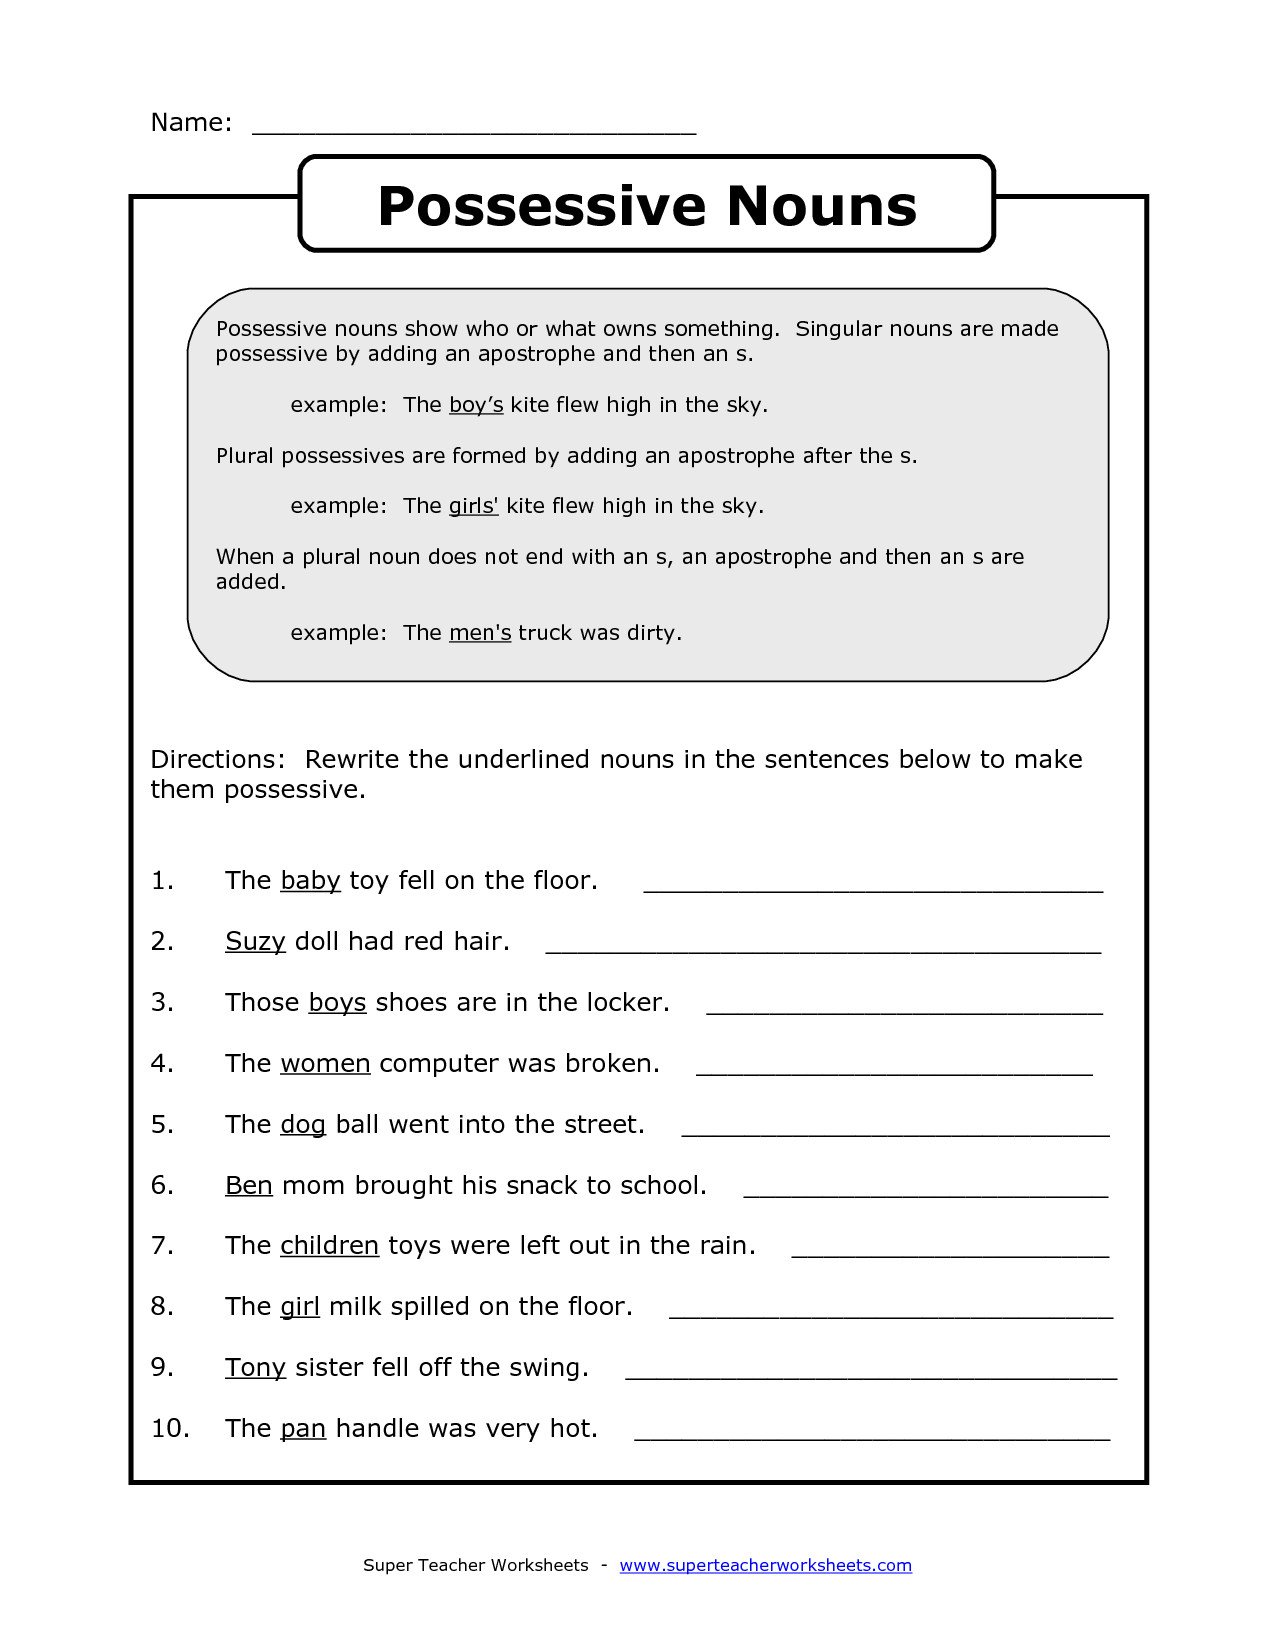 Possessive Nouns Worksheets 3rd Grade Possessive Nouns Worksheets Elementary